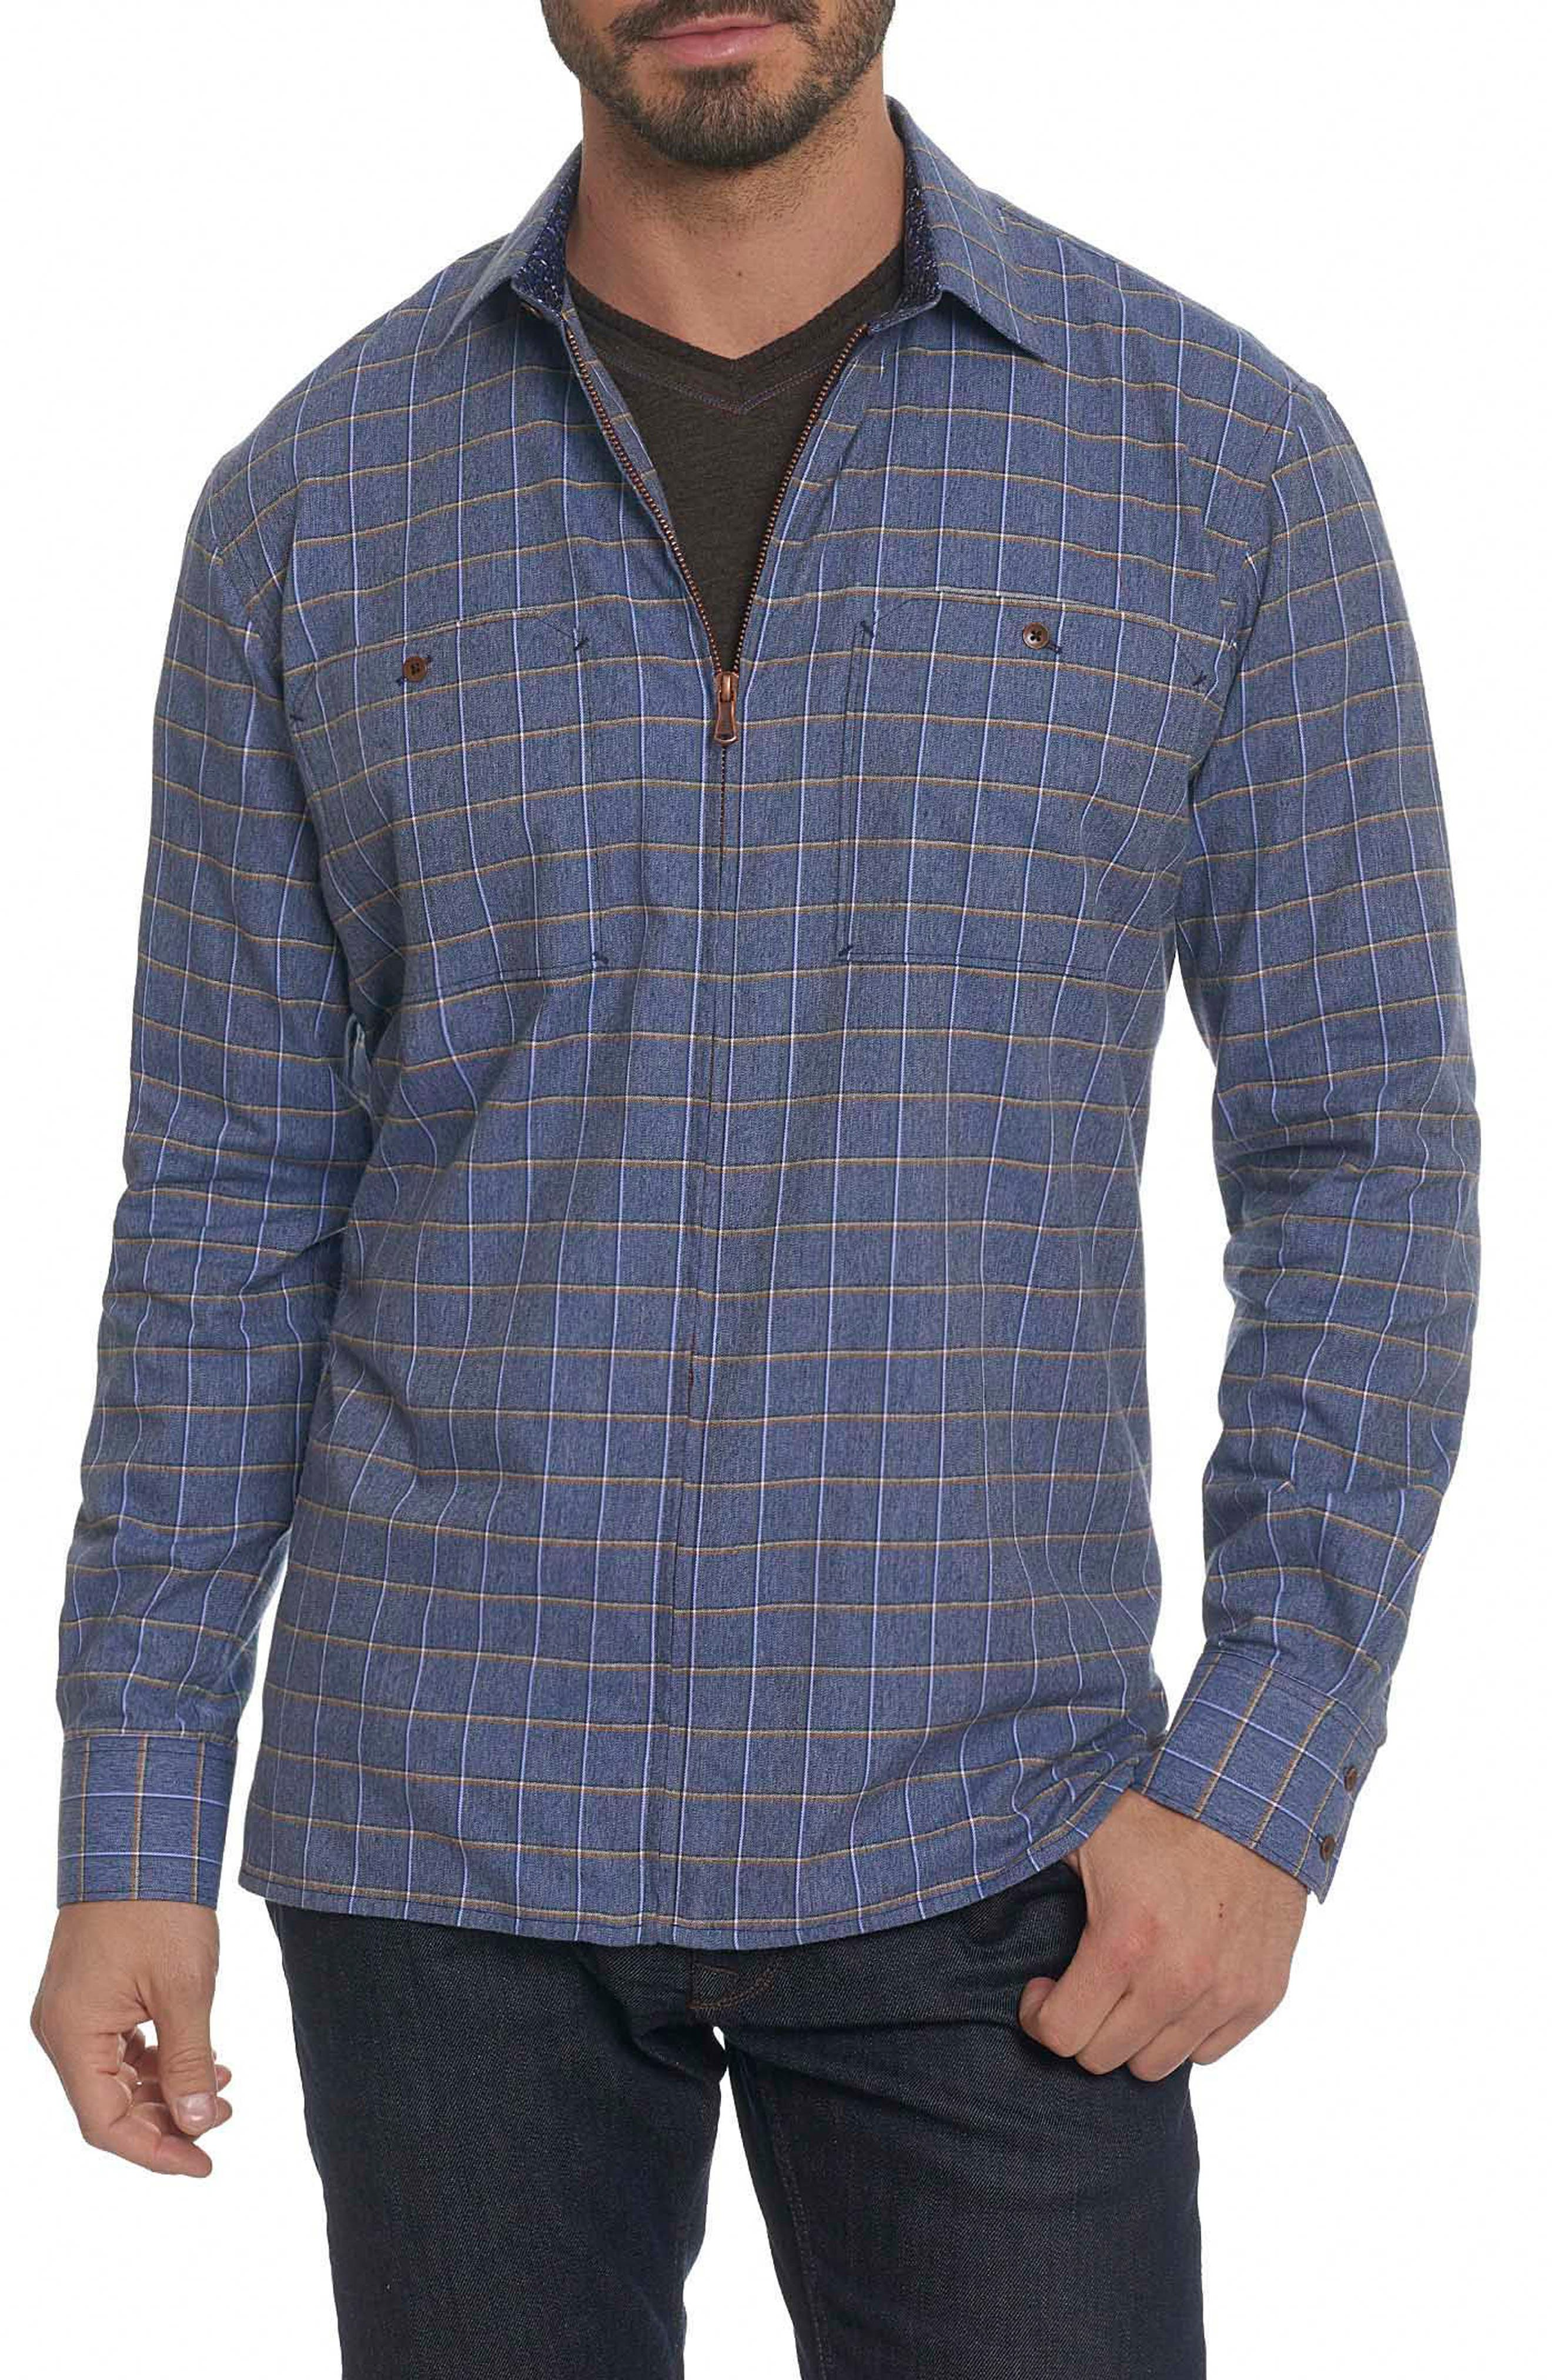 Auburn Check Shirt Jacket,                         Main,                         color, Blue